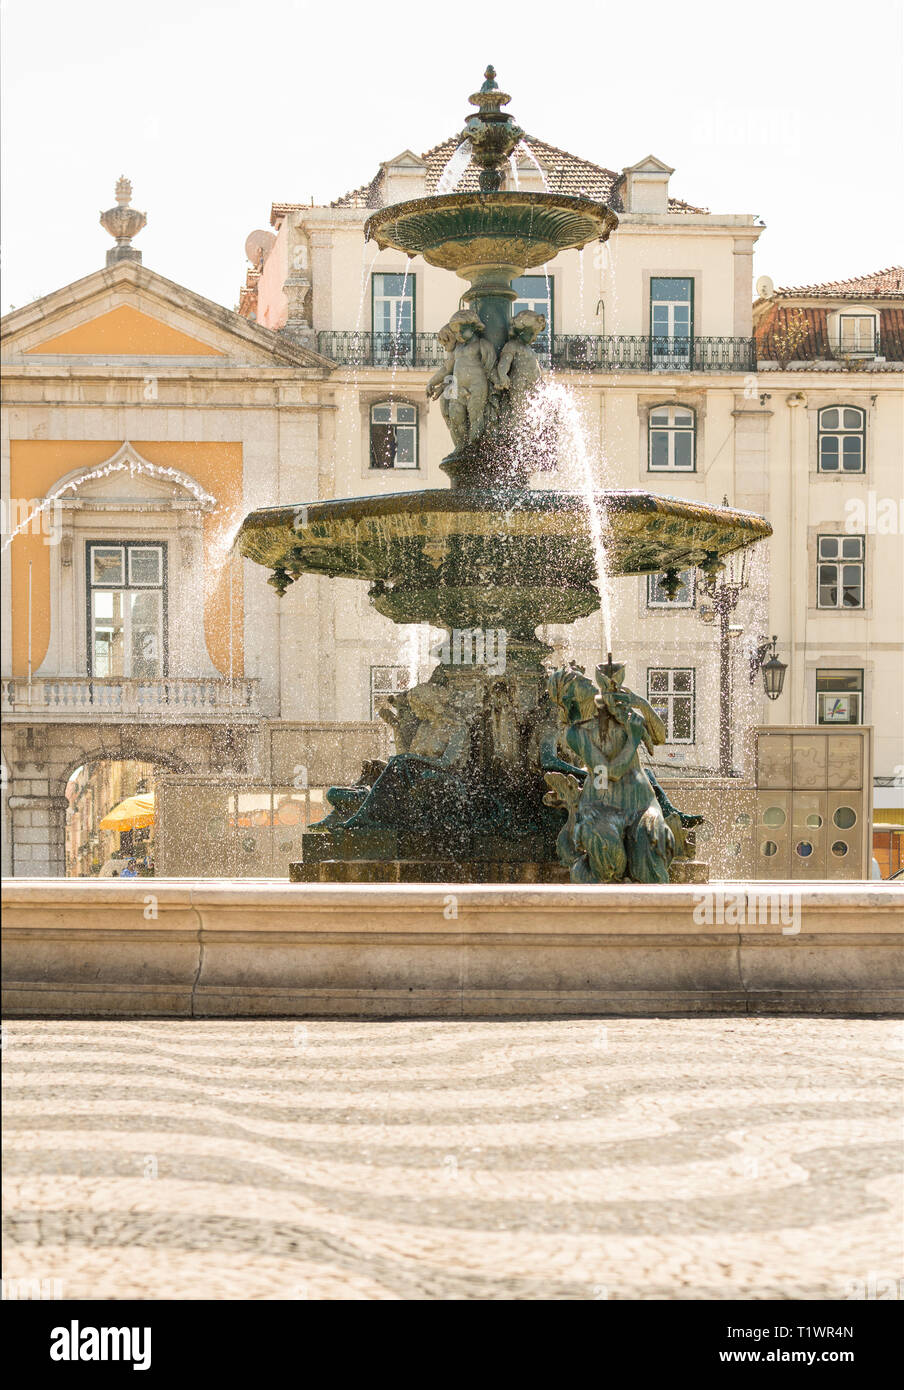 A beautiful, ornate, classical fountain on a public plaza in downtown Lisbon, Portugal - Stock Image